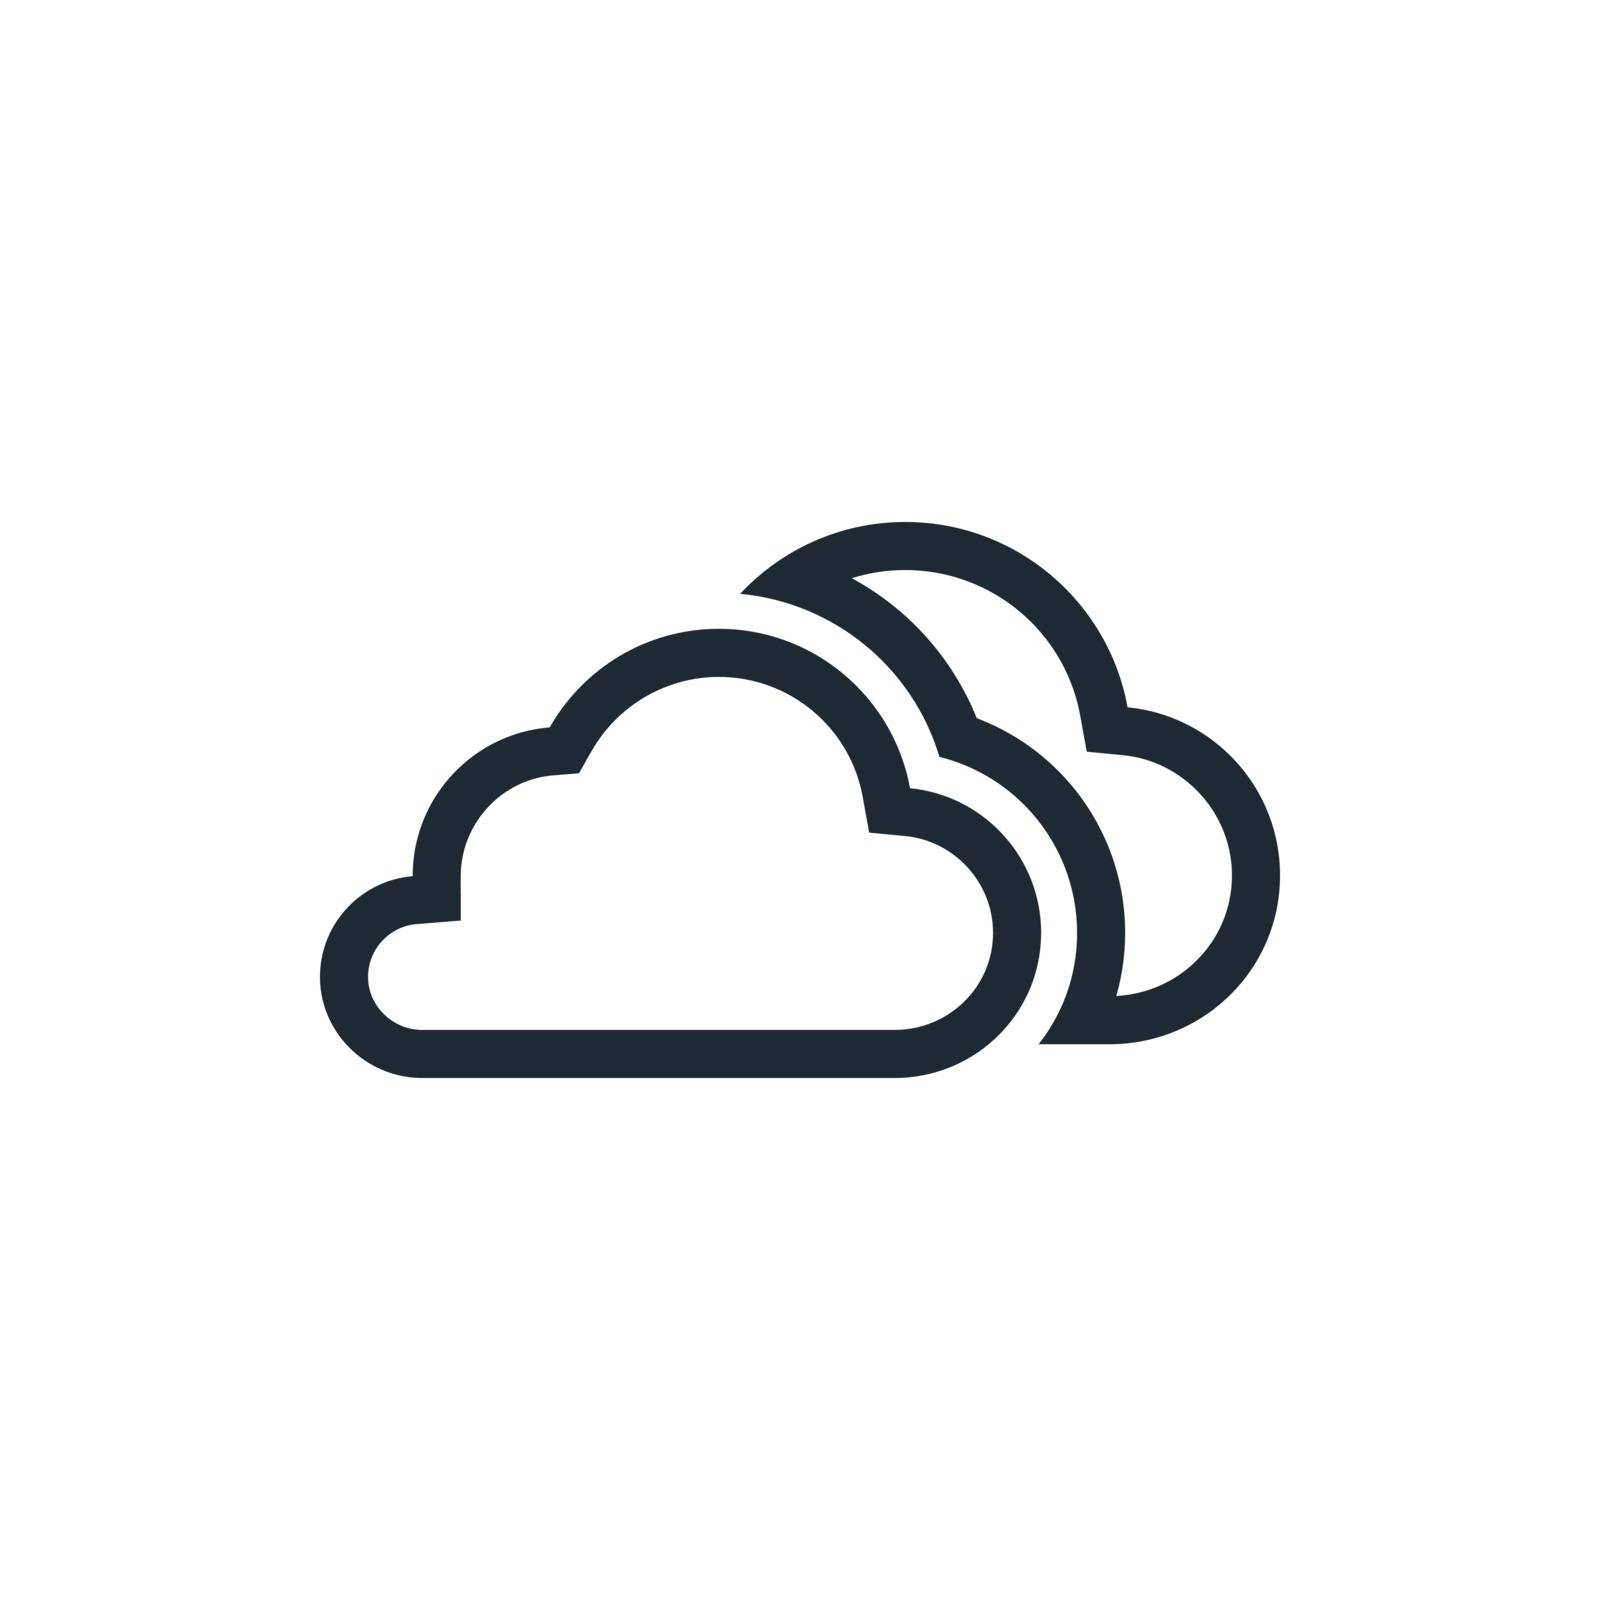 outline clouds icon